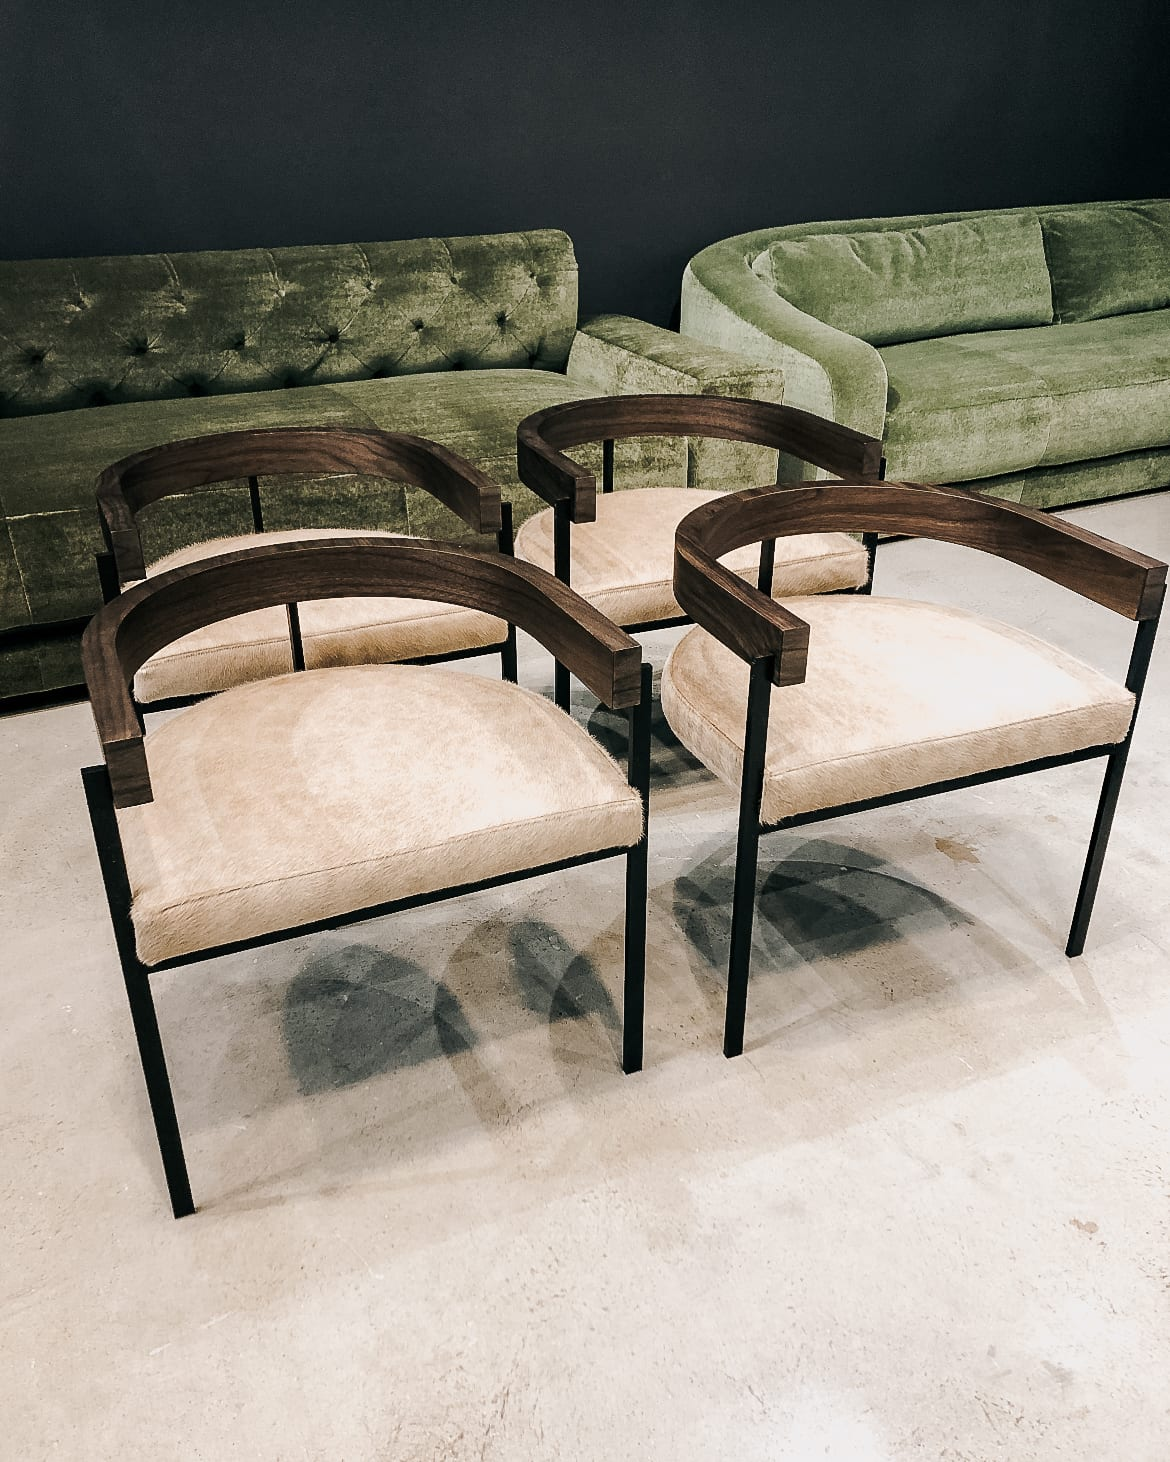 Beautiful Chairs with Upholstery